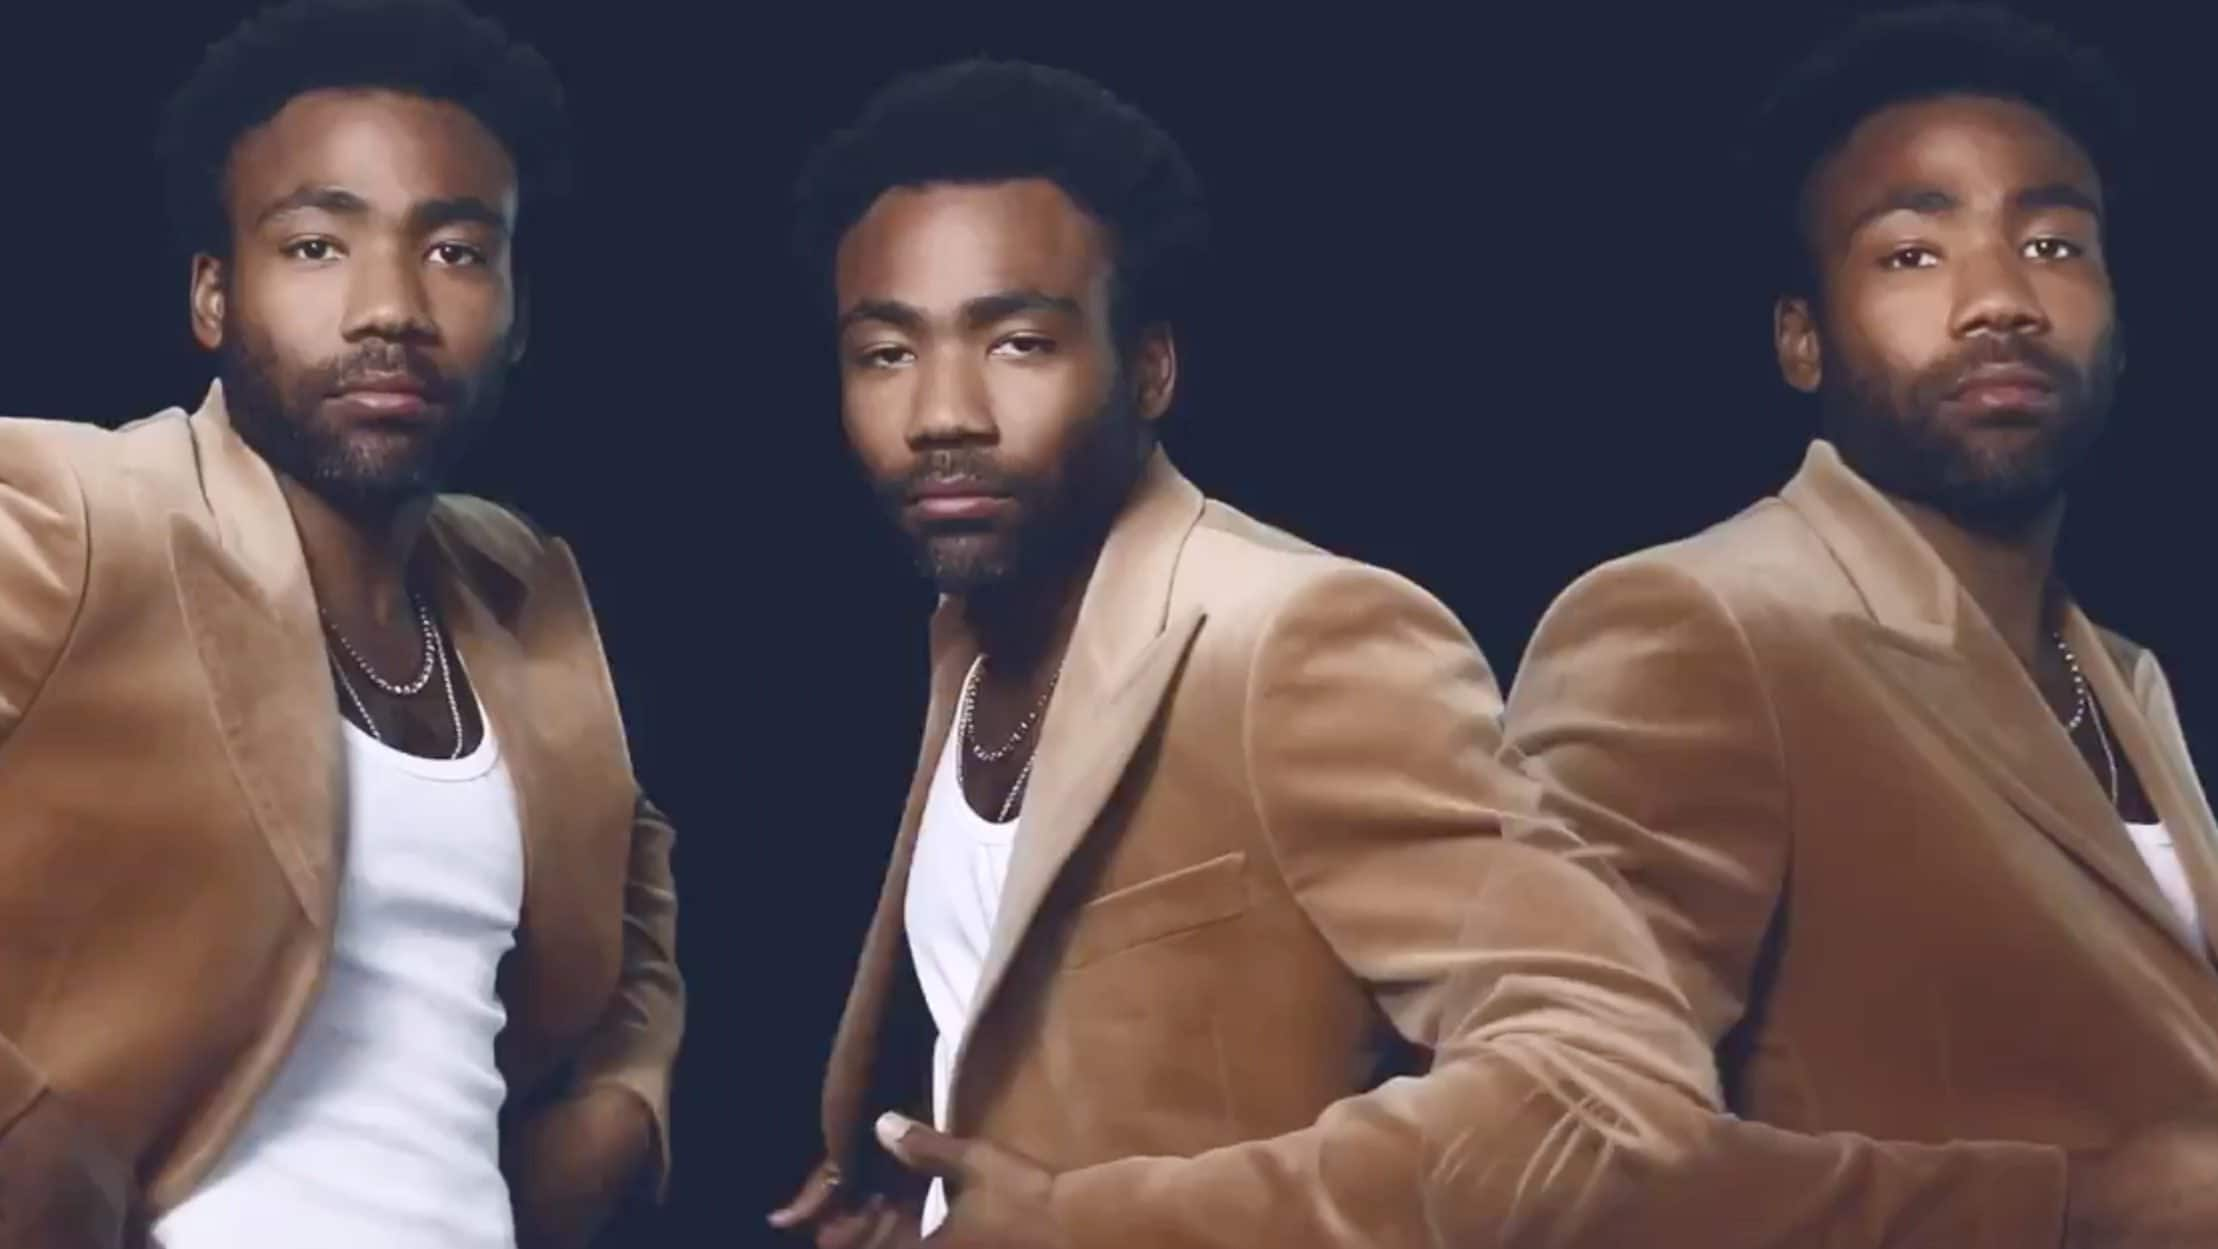 Donald Glover Introduces Lando and Jams with Max Rebo on SNL